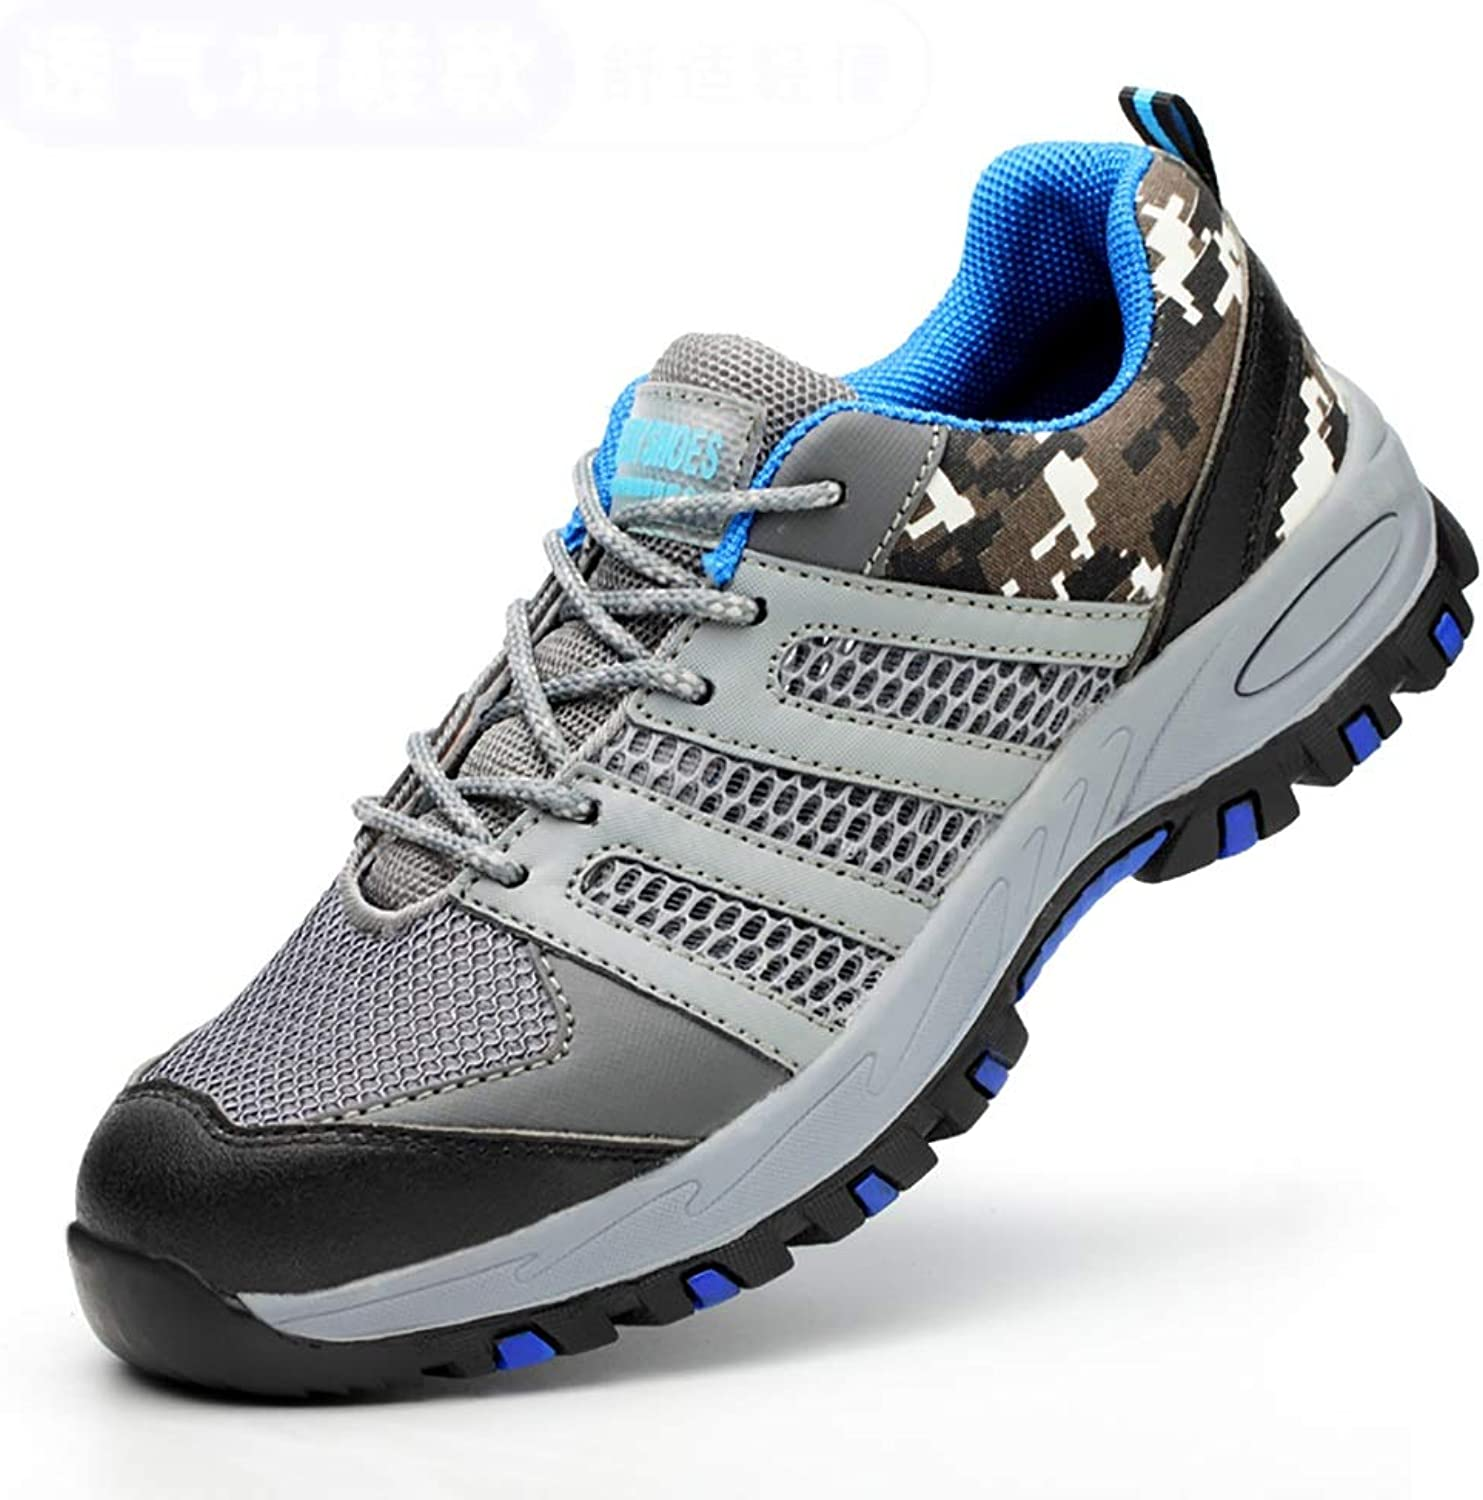 ZYFXZ Work shoes Lightweight breathable safety shoes, tendon outsole mesh anti-piercing work shoes safety shoes (color   A, Size   46)